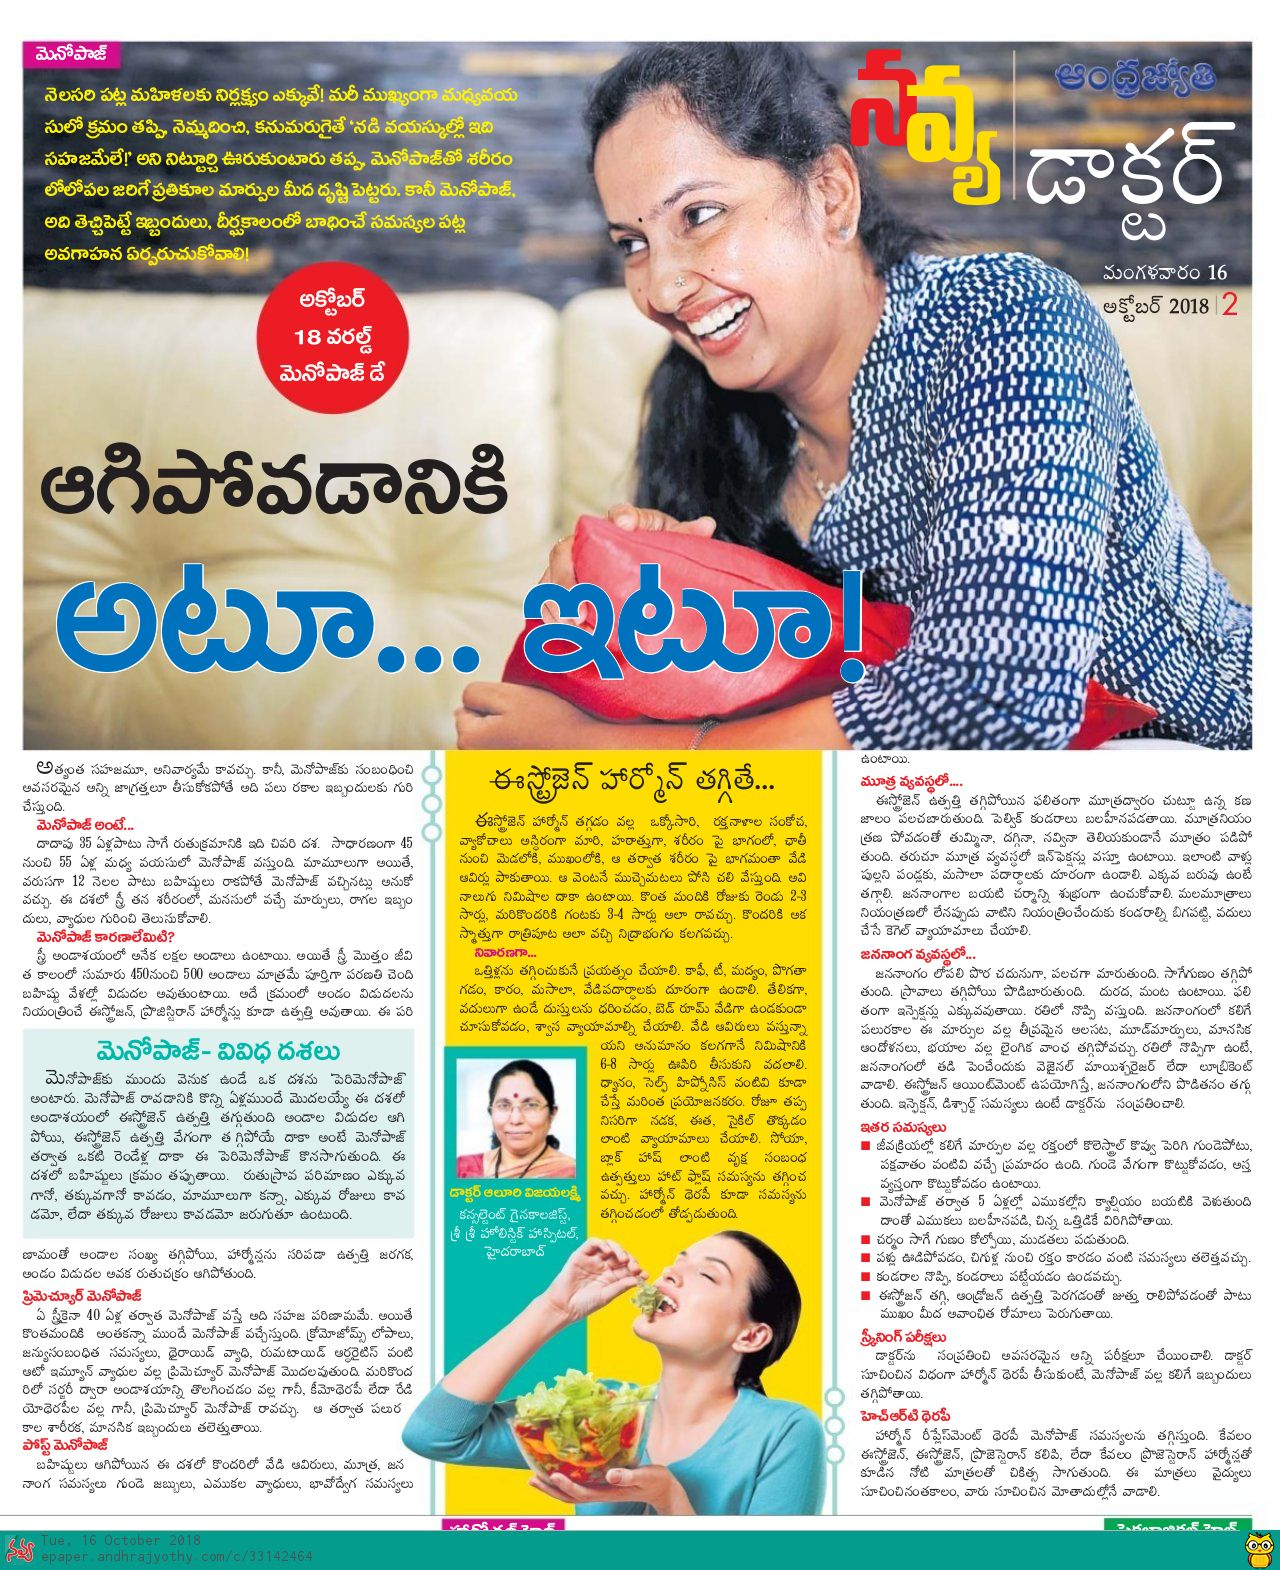 On the occassion of International Menopause day Dr.Aluri Vijayalakshmi, Chief Gynecologist article in Andhra Jyothi, navya